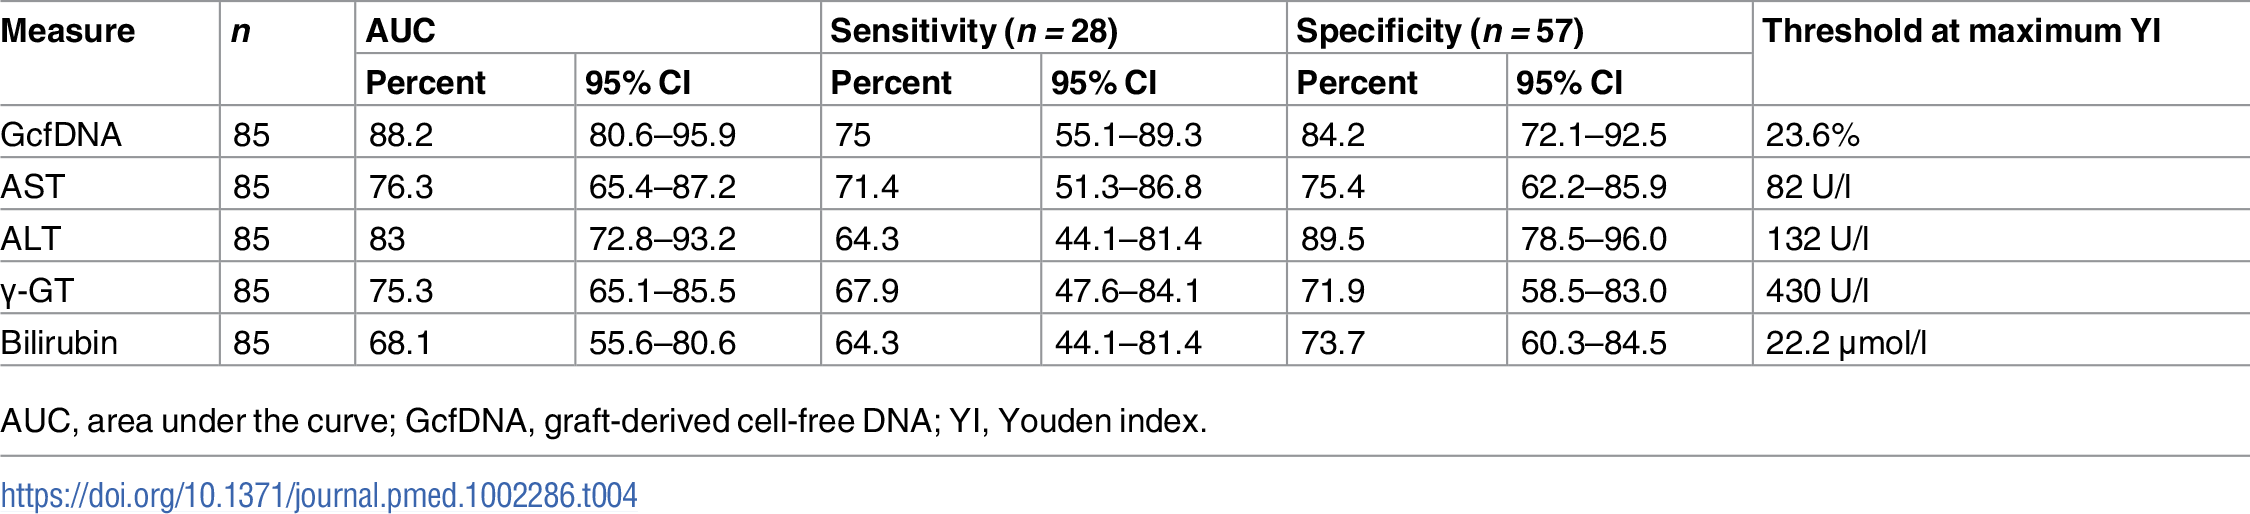 Youden-index-based diagnostic sensitivity and specificity obtained from receiver operator characteristic curves in rejection versus HCV+ samples.